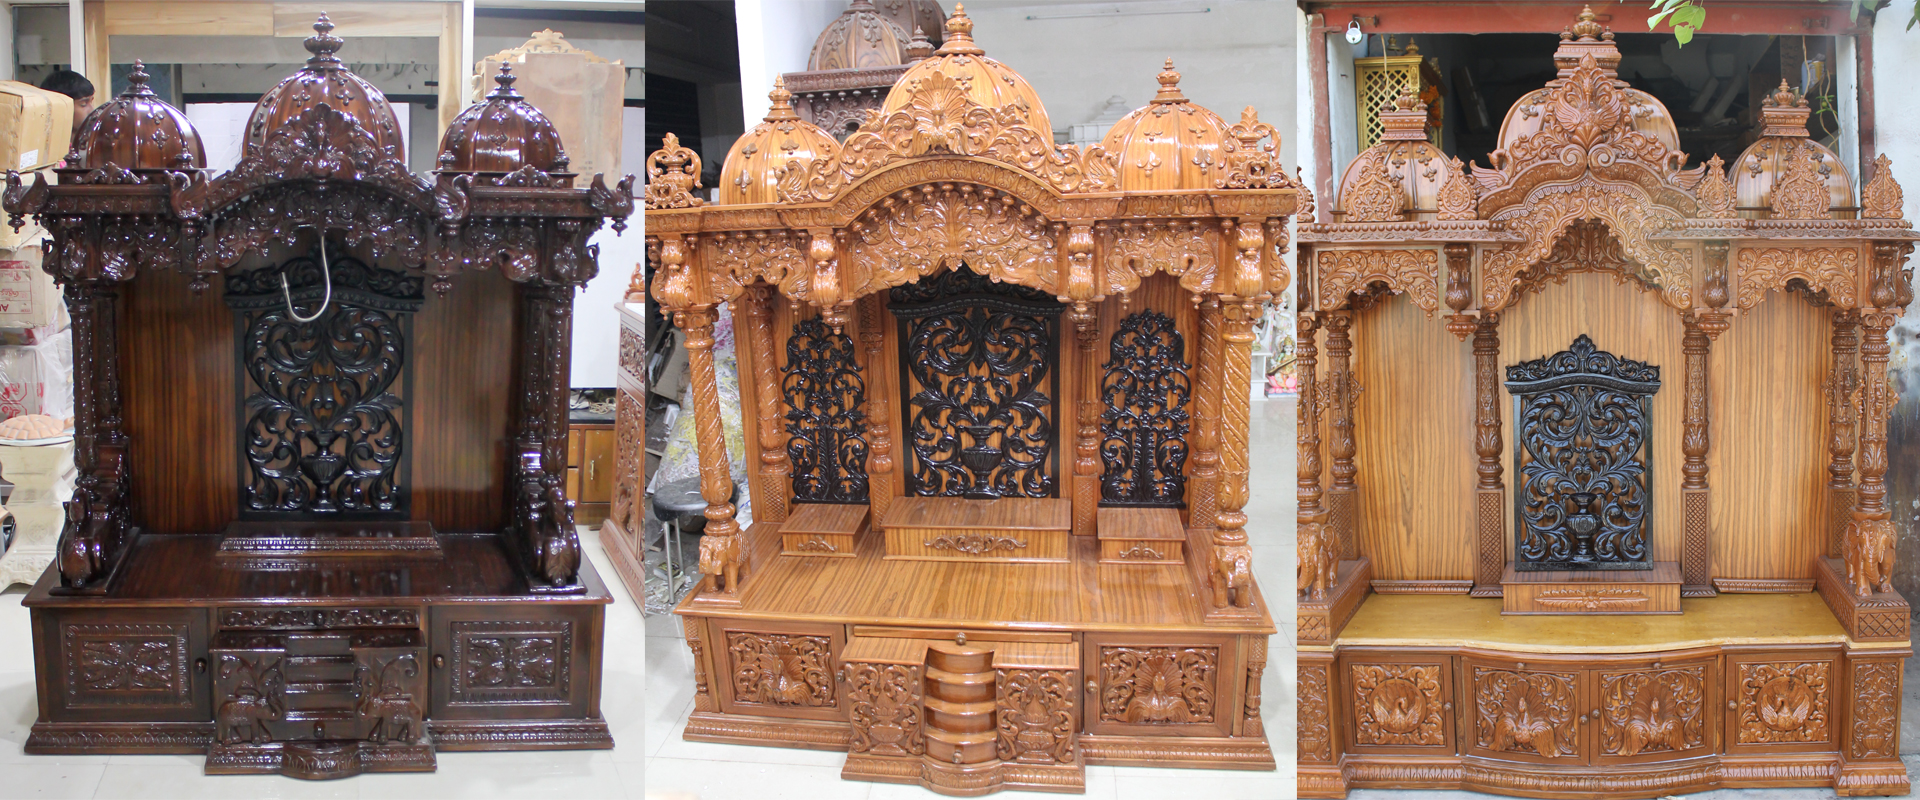 Wooden Temple Buy Wooden Temples And Wooden Mandir Online At A Reasonable Rates Coral Crafts